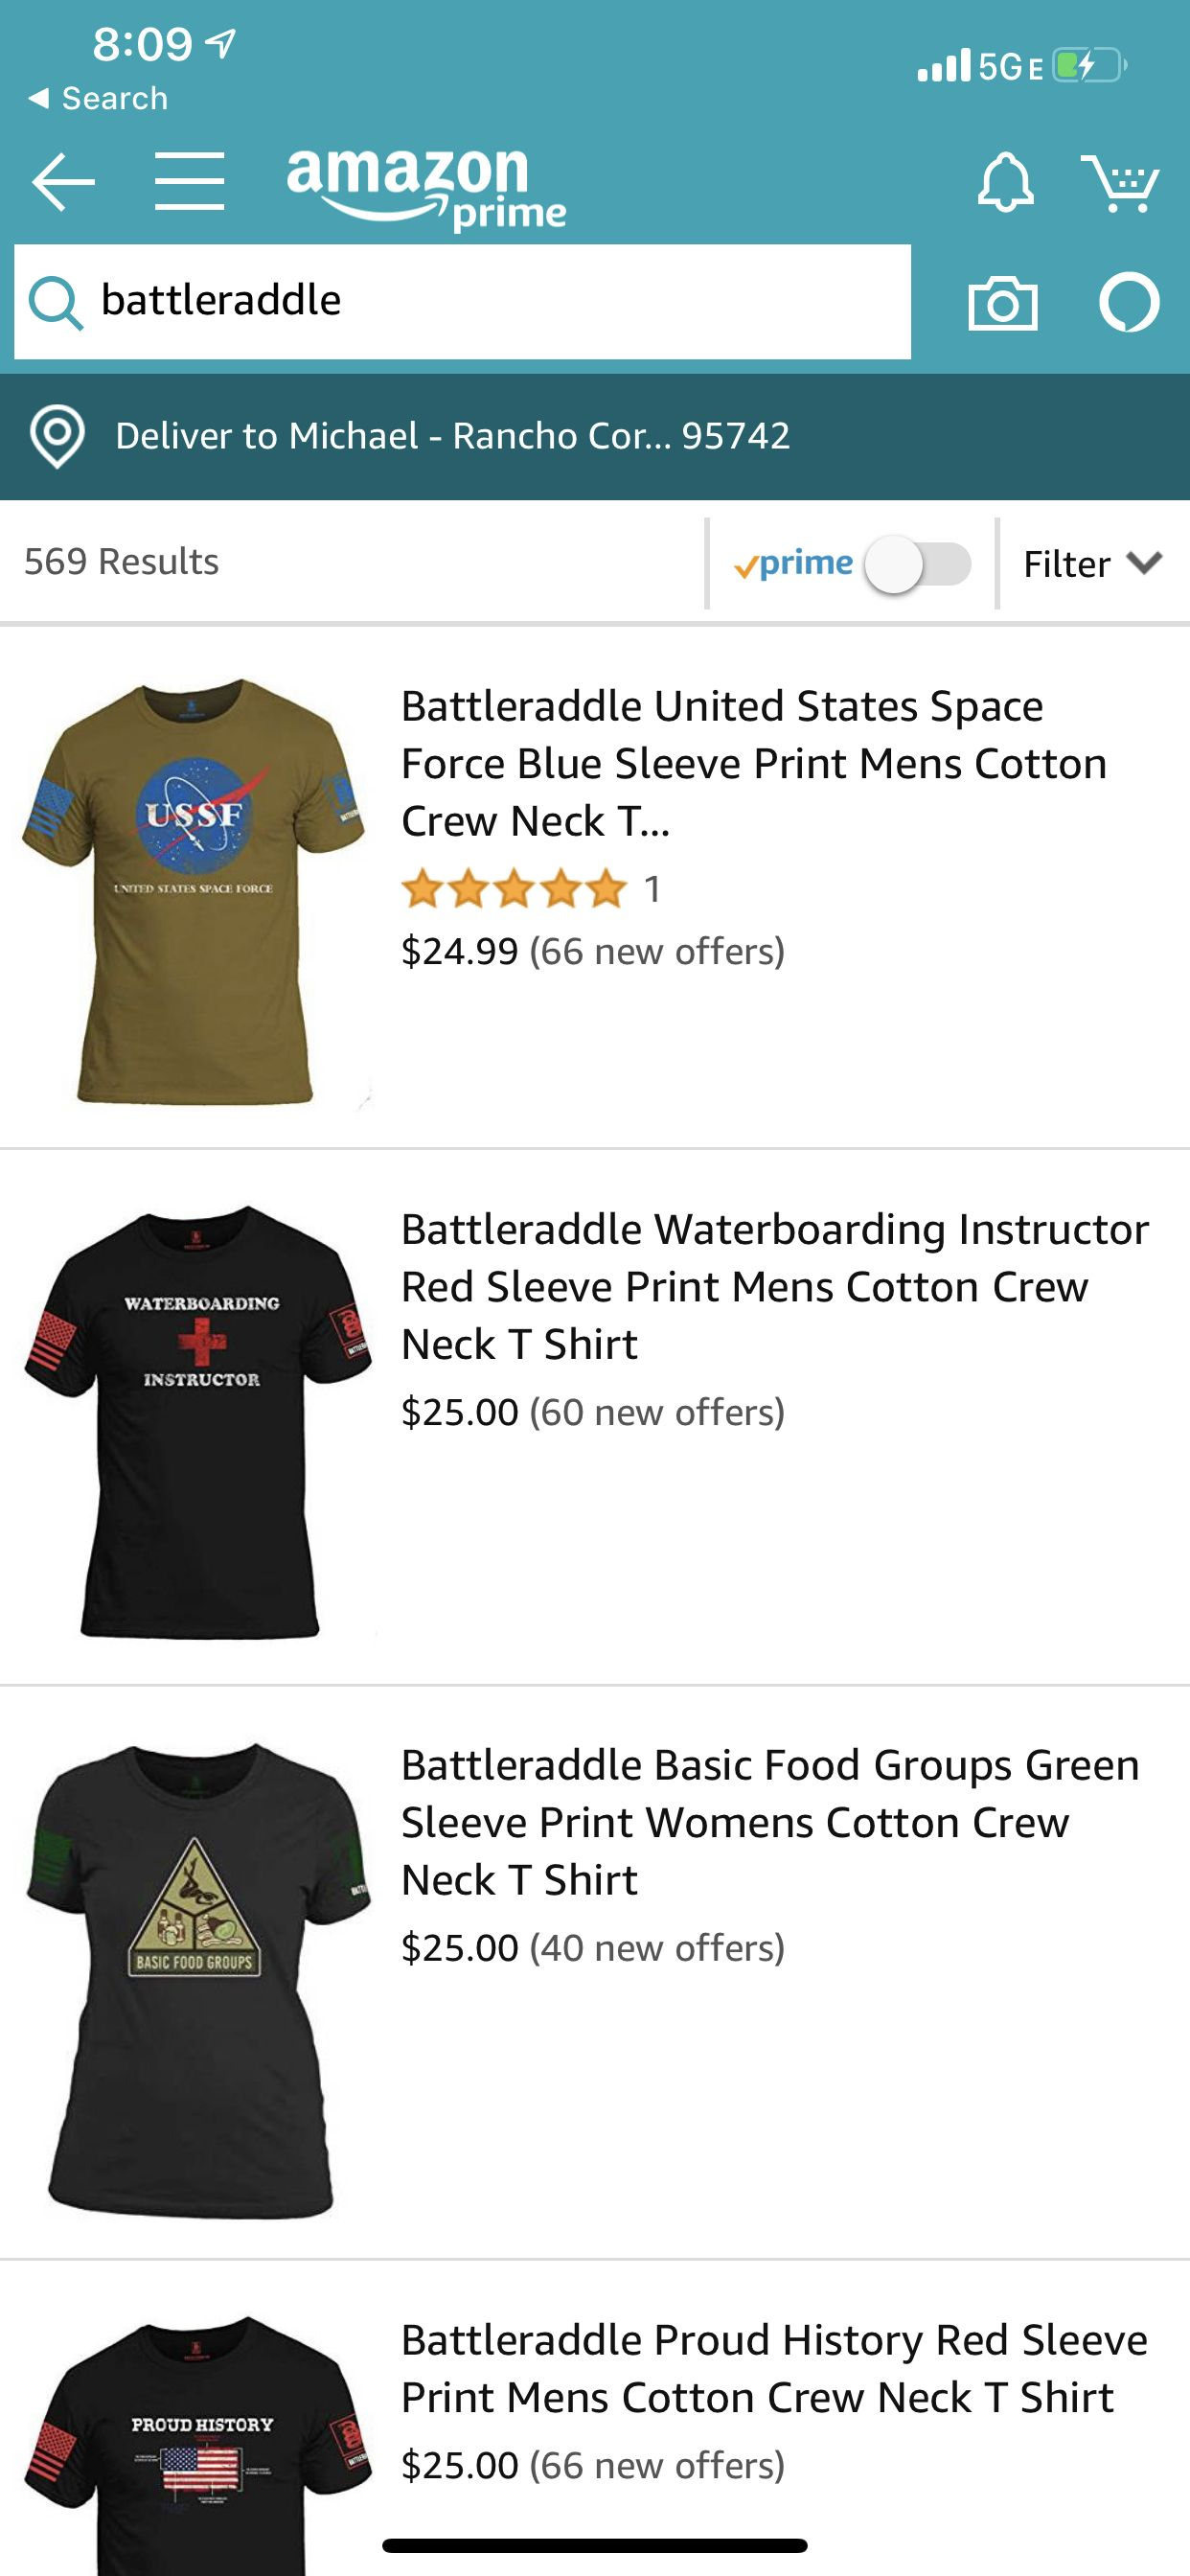 Battleraddle Always Ships Free And Same Day From Website Also We Offer Prime And Deliver On Sundays When You Order On Amazo You Deserve It Neck T Shirt Amazon